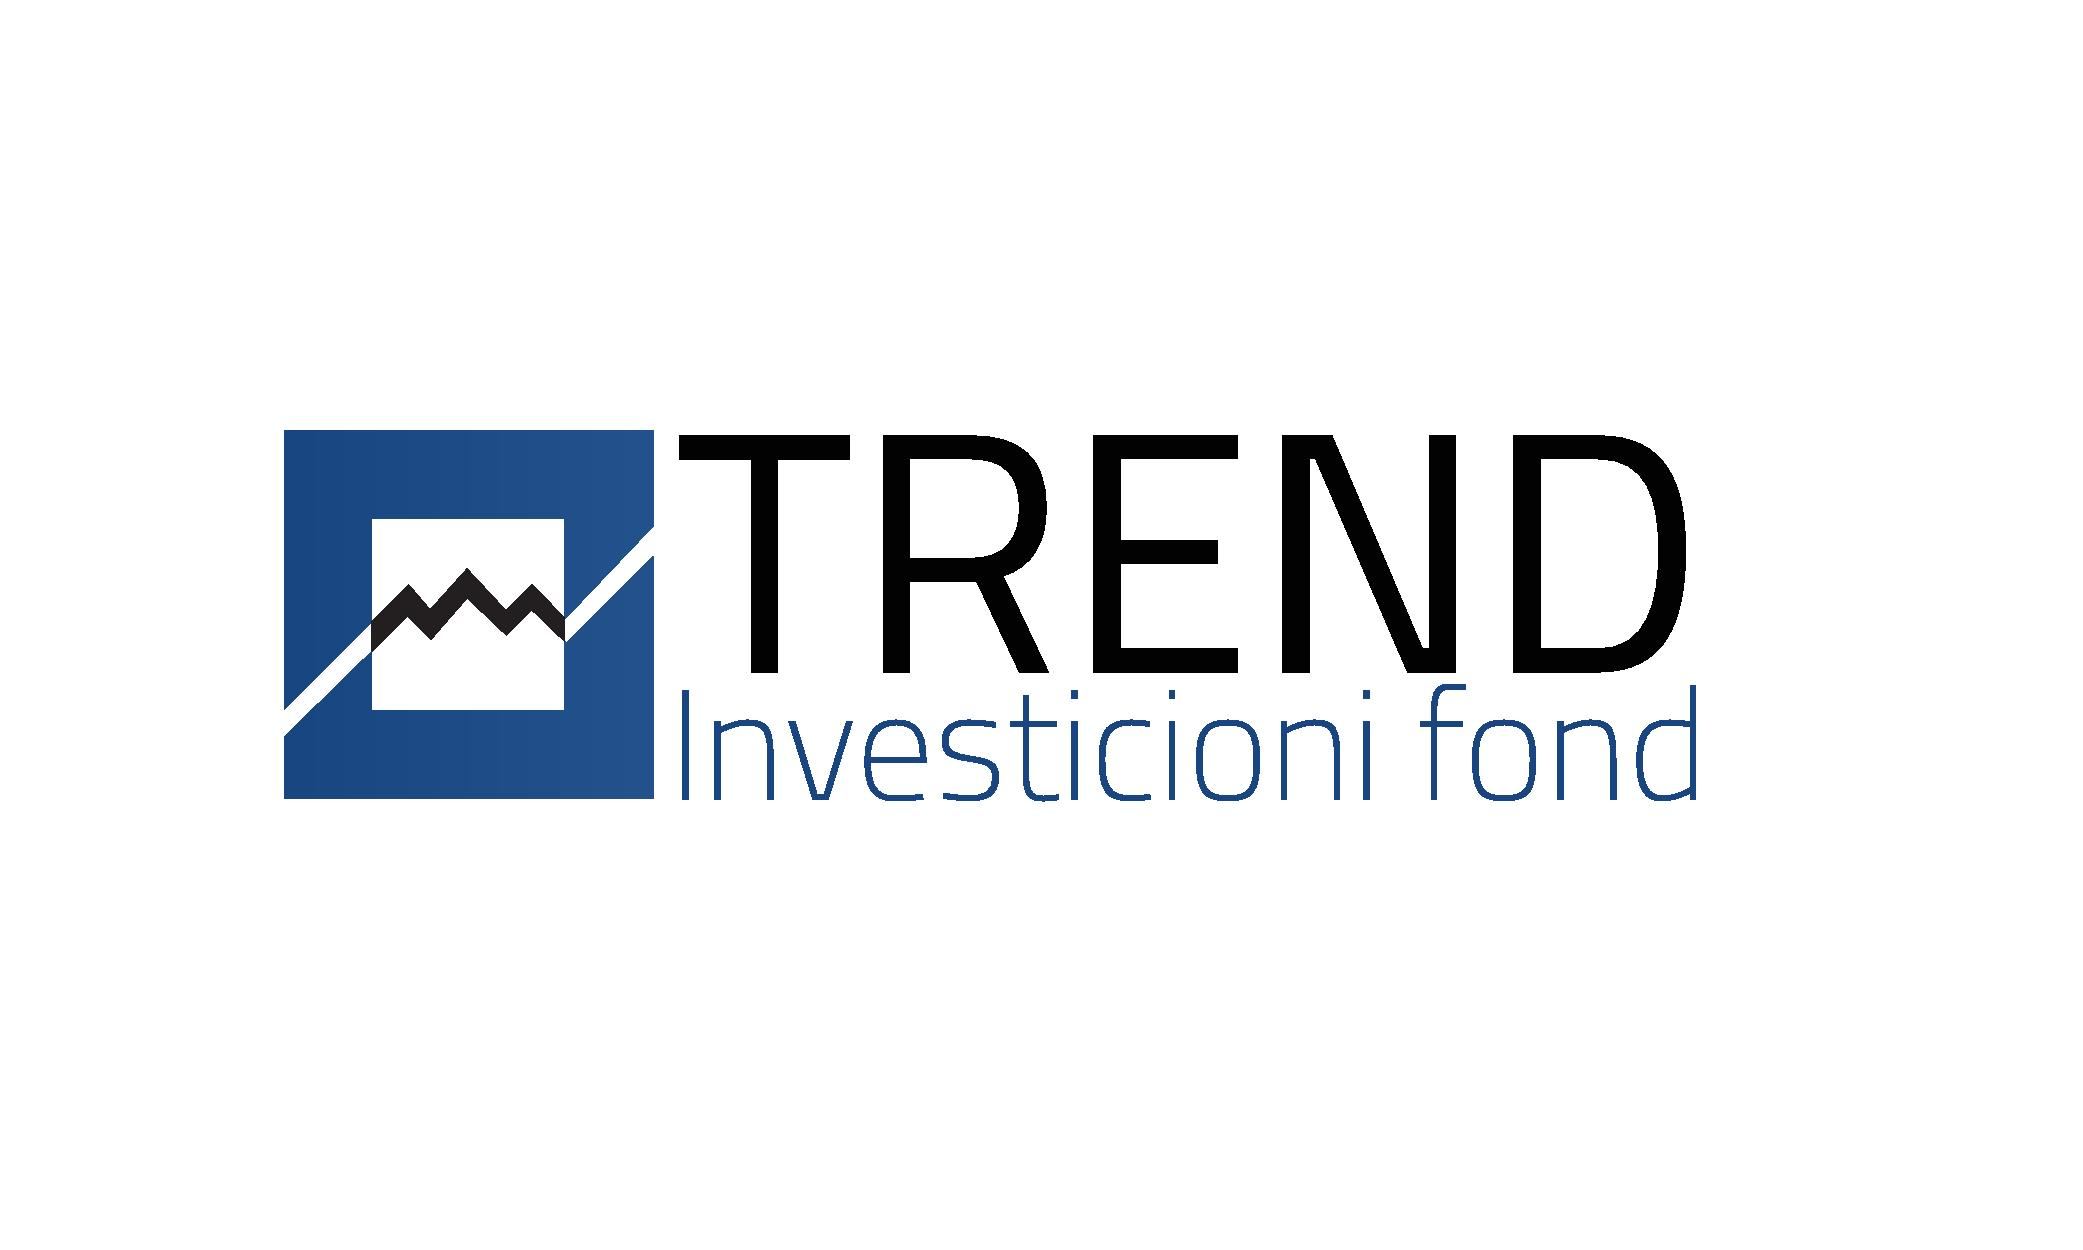 Investments Fund Trend